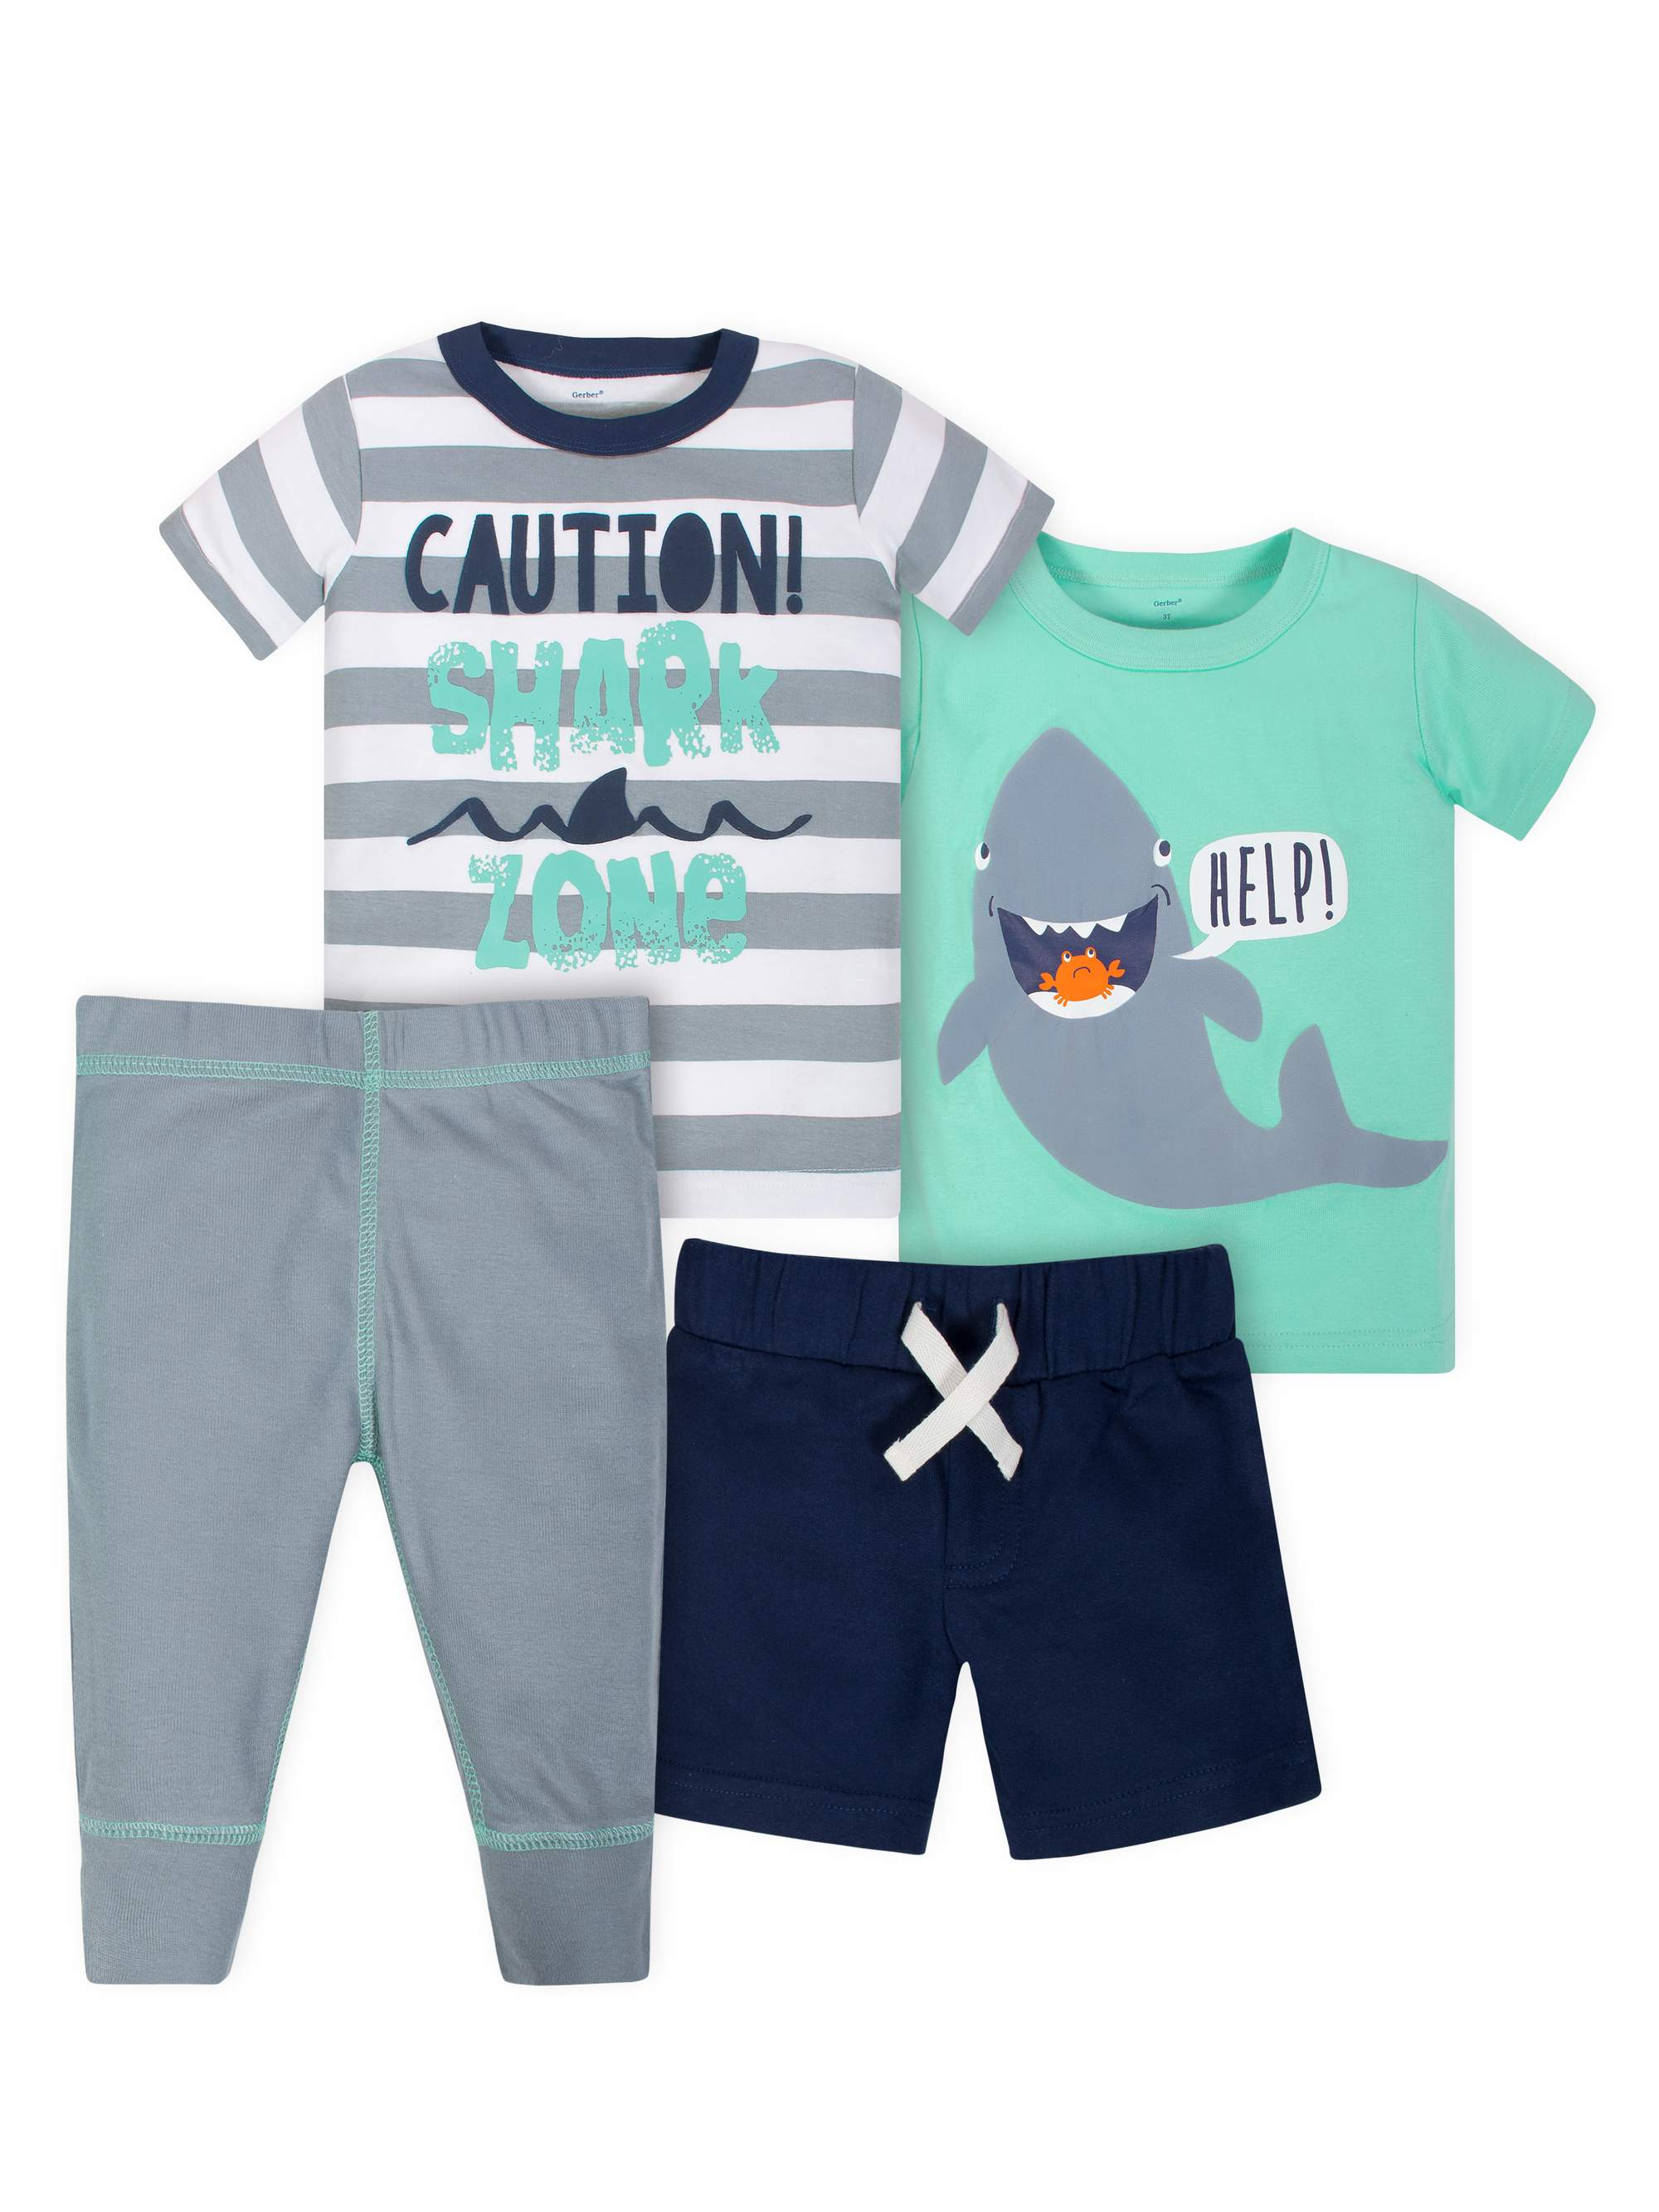 Shirts, Short and Pant Mix N Match Outfit Sets, 4pc (Toddler Boys)